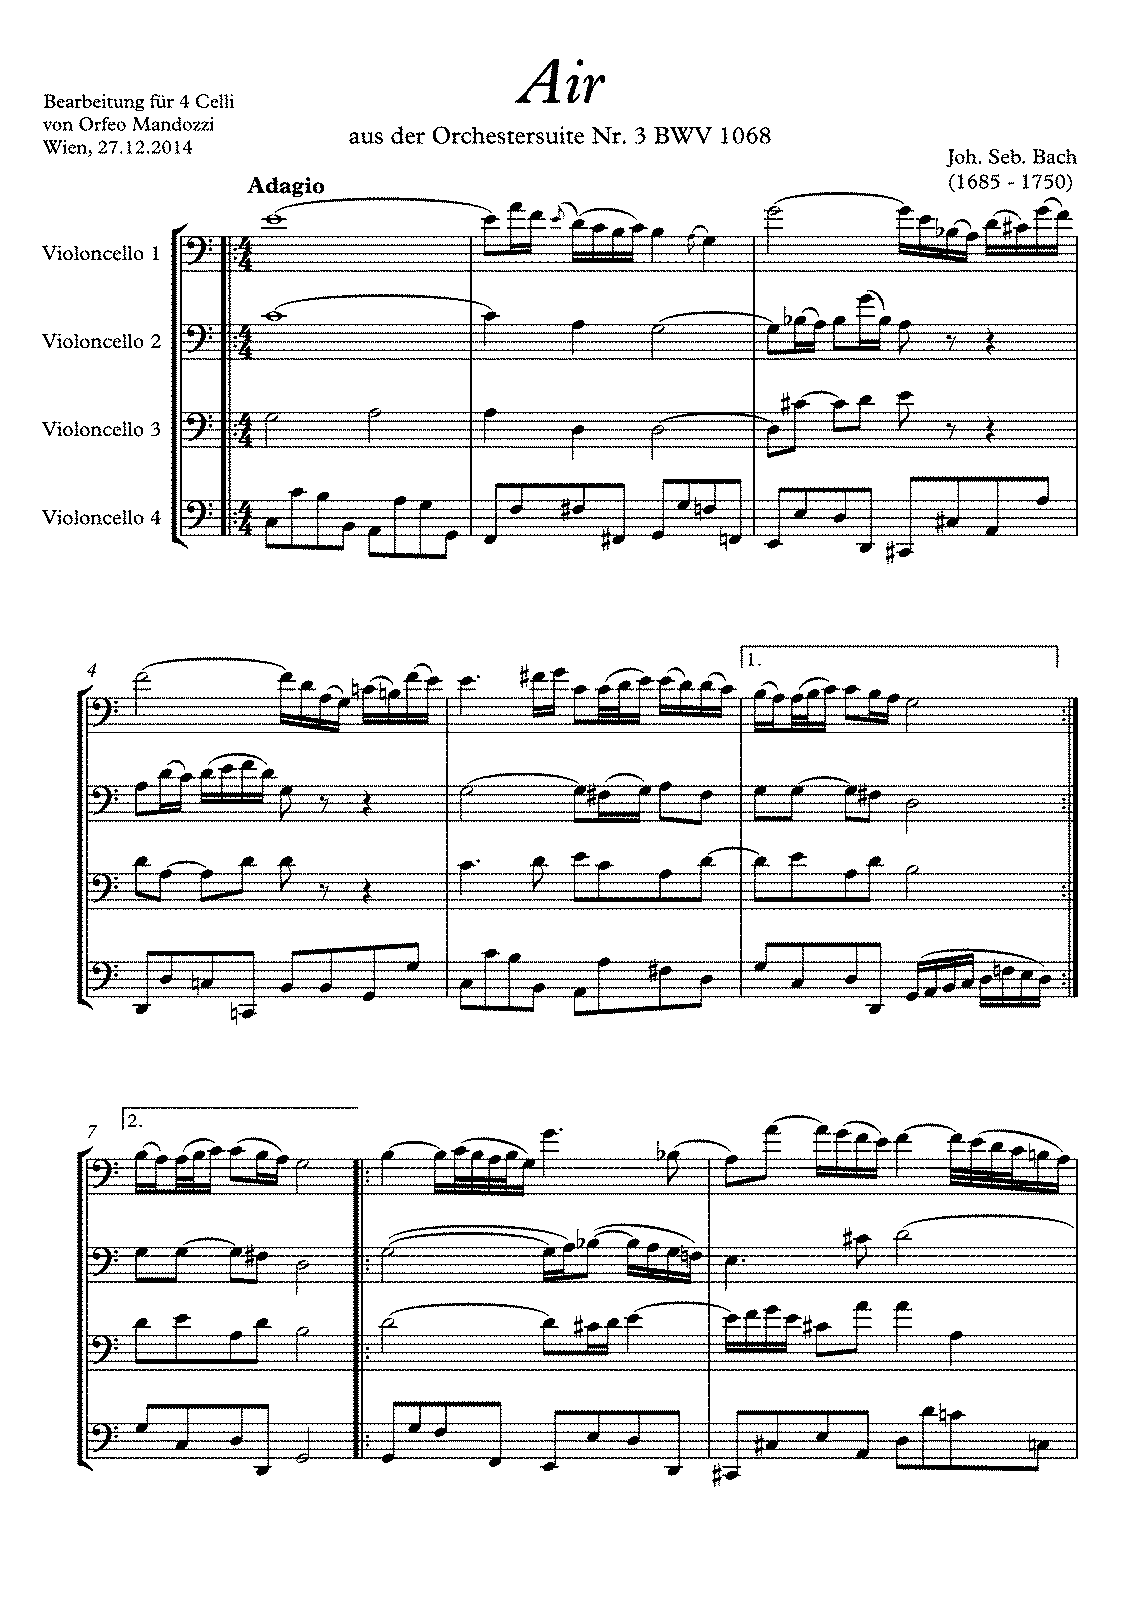 PMLP100008-Bach Mandozzi Air BWV 1068 4 Cellos - Partitur.pdf